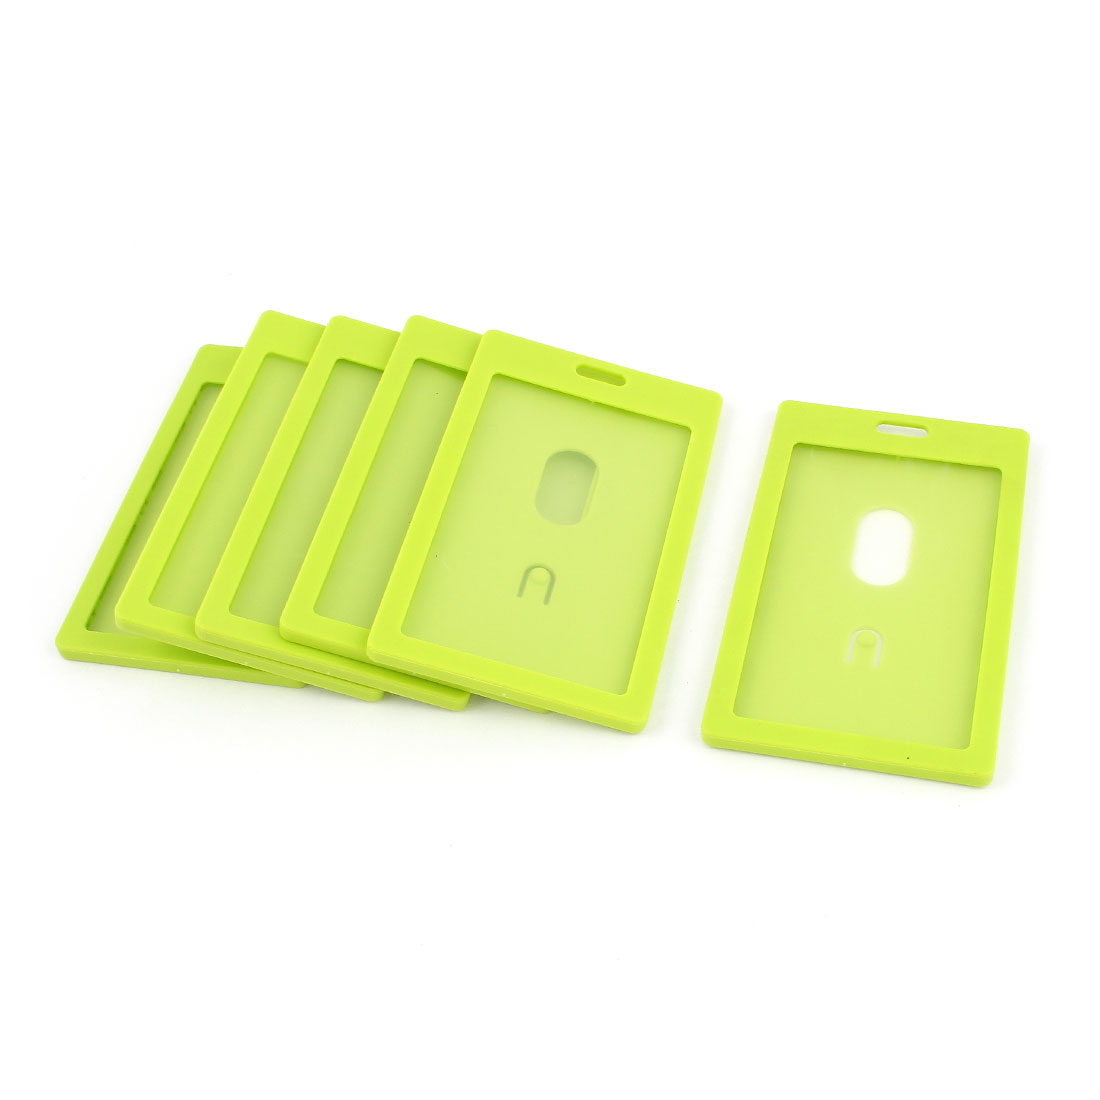 6pcs Green Plastic Vertical School Work ID Holder Attachment Top 54mm x 90mm